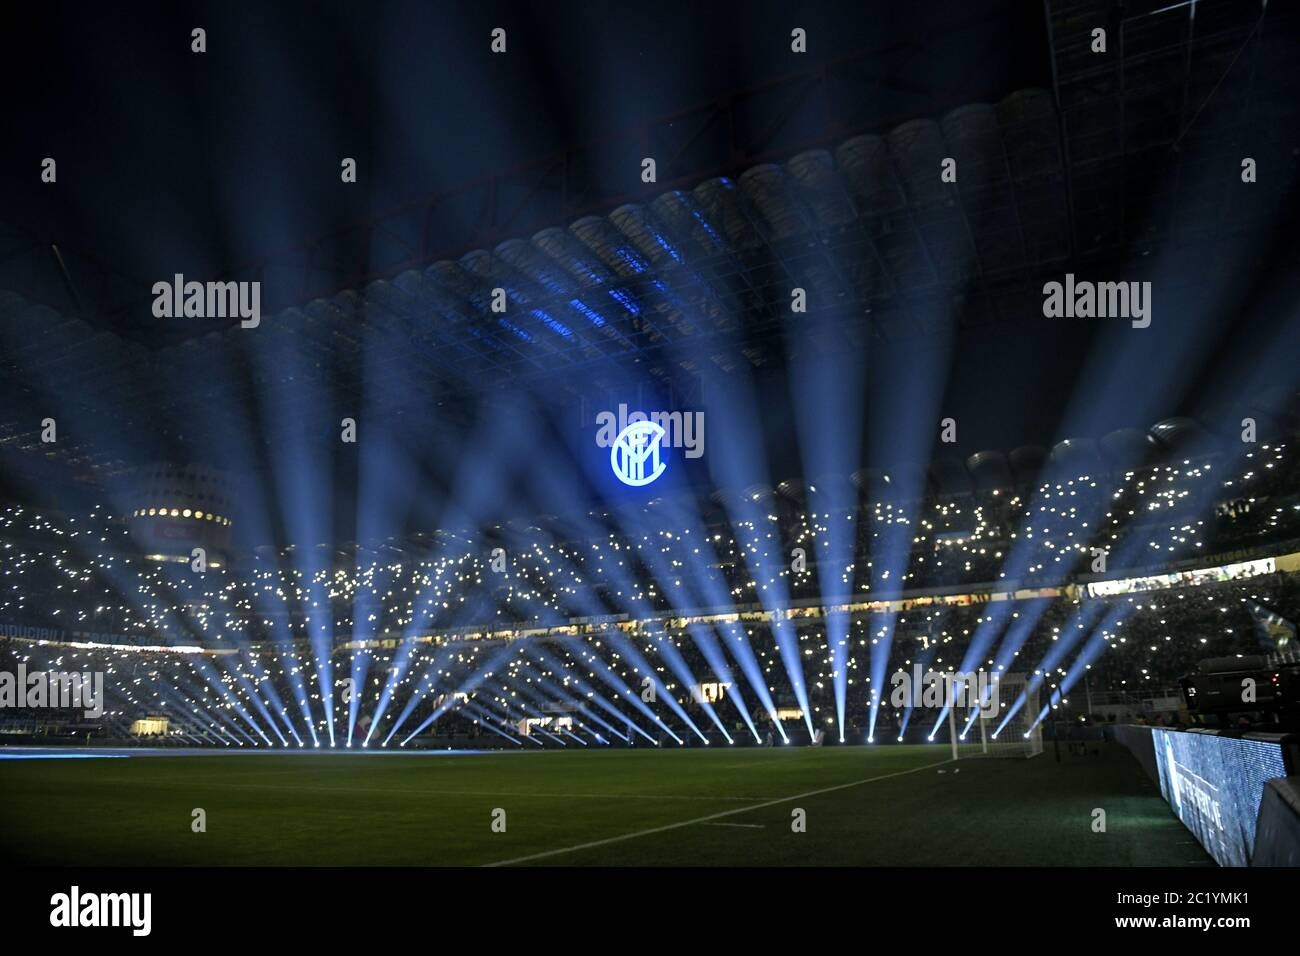 Blue lights and smatphone lights in the dark of the san siro football stadium, before Inter Milan's soccer players enter on the pitch, in Milan. Stock Photo